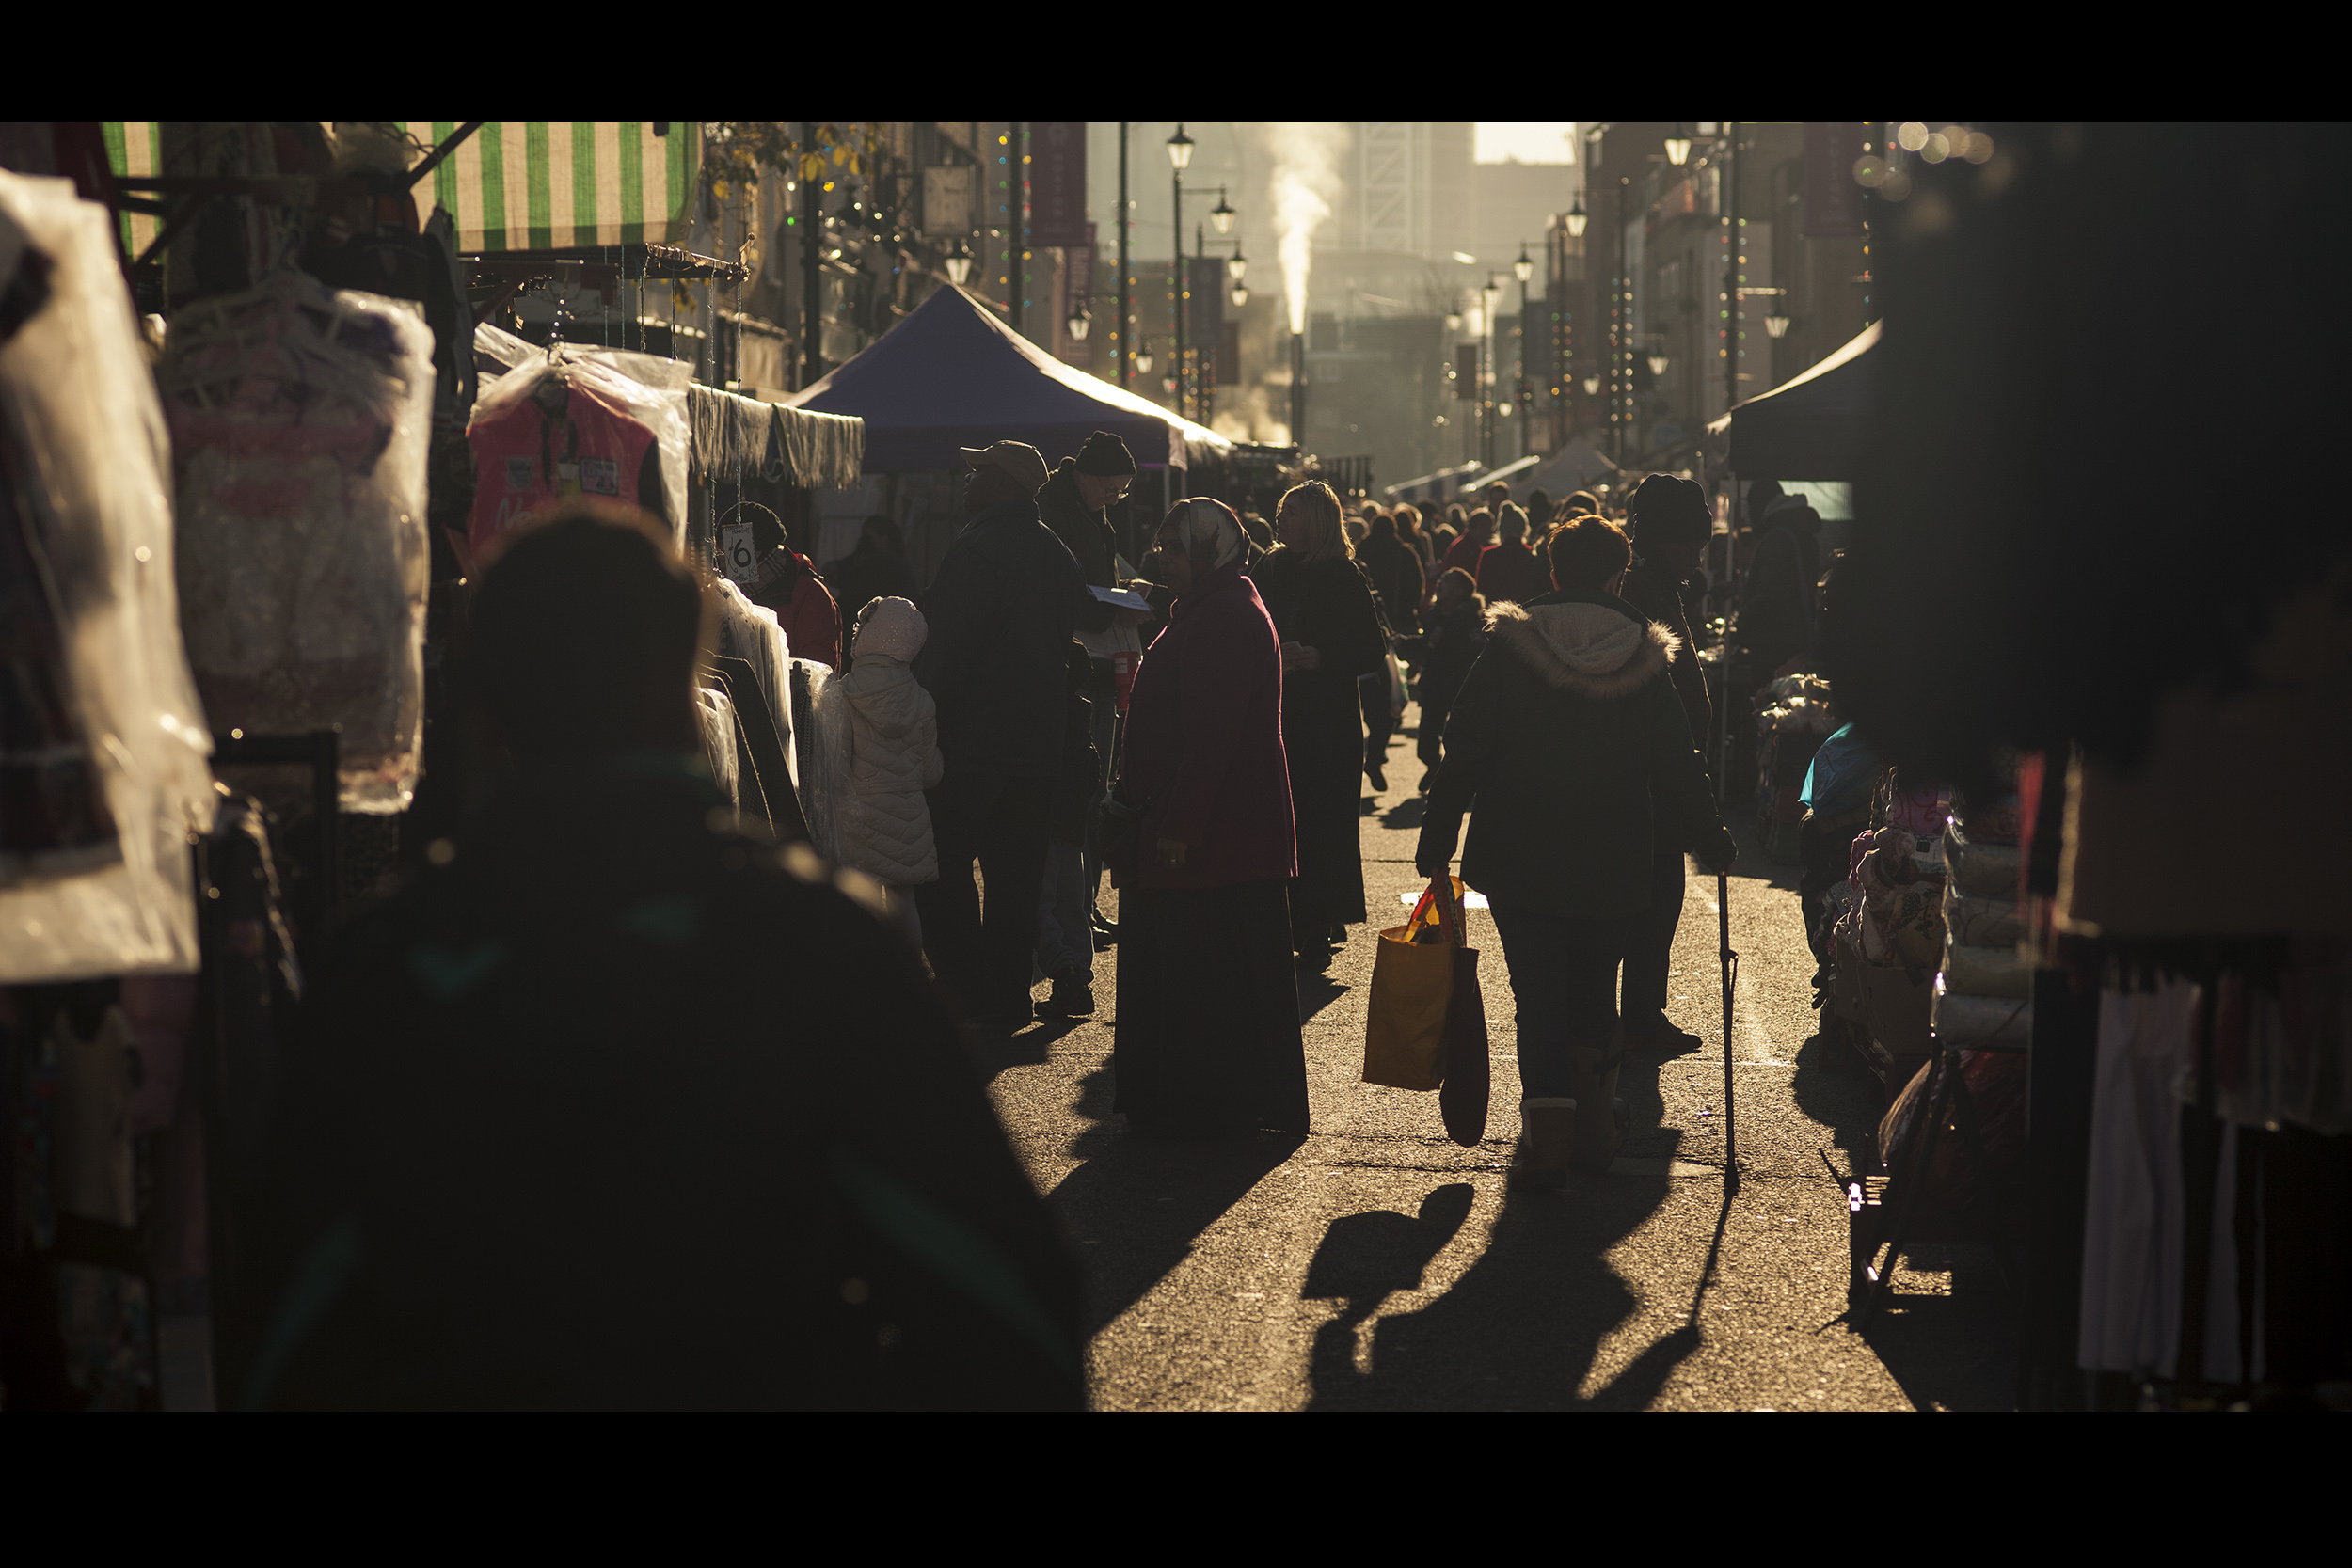 Hoxton street market by leventep